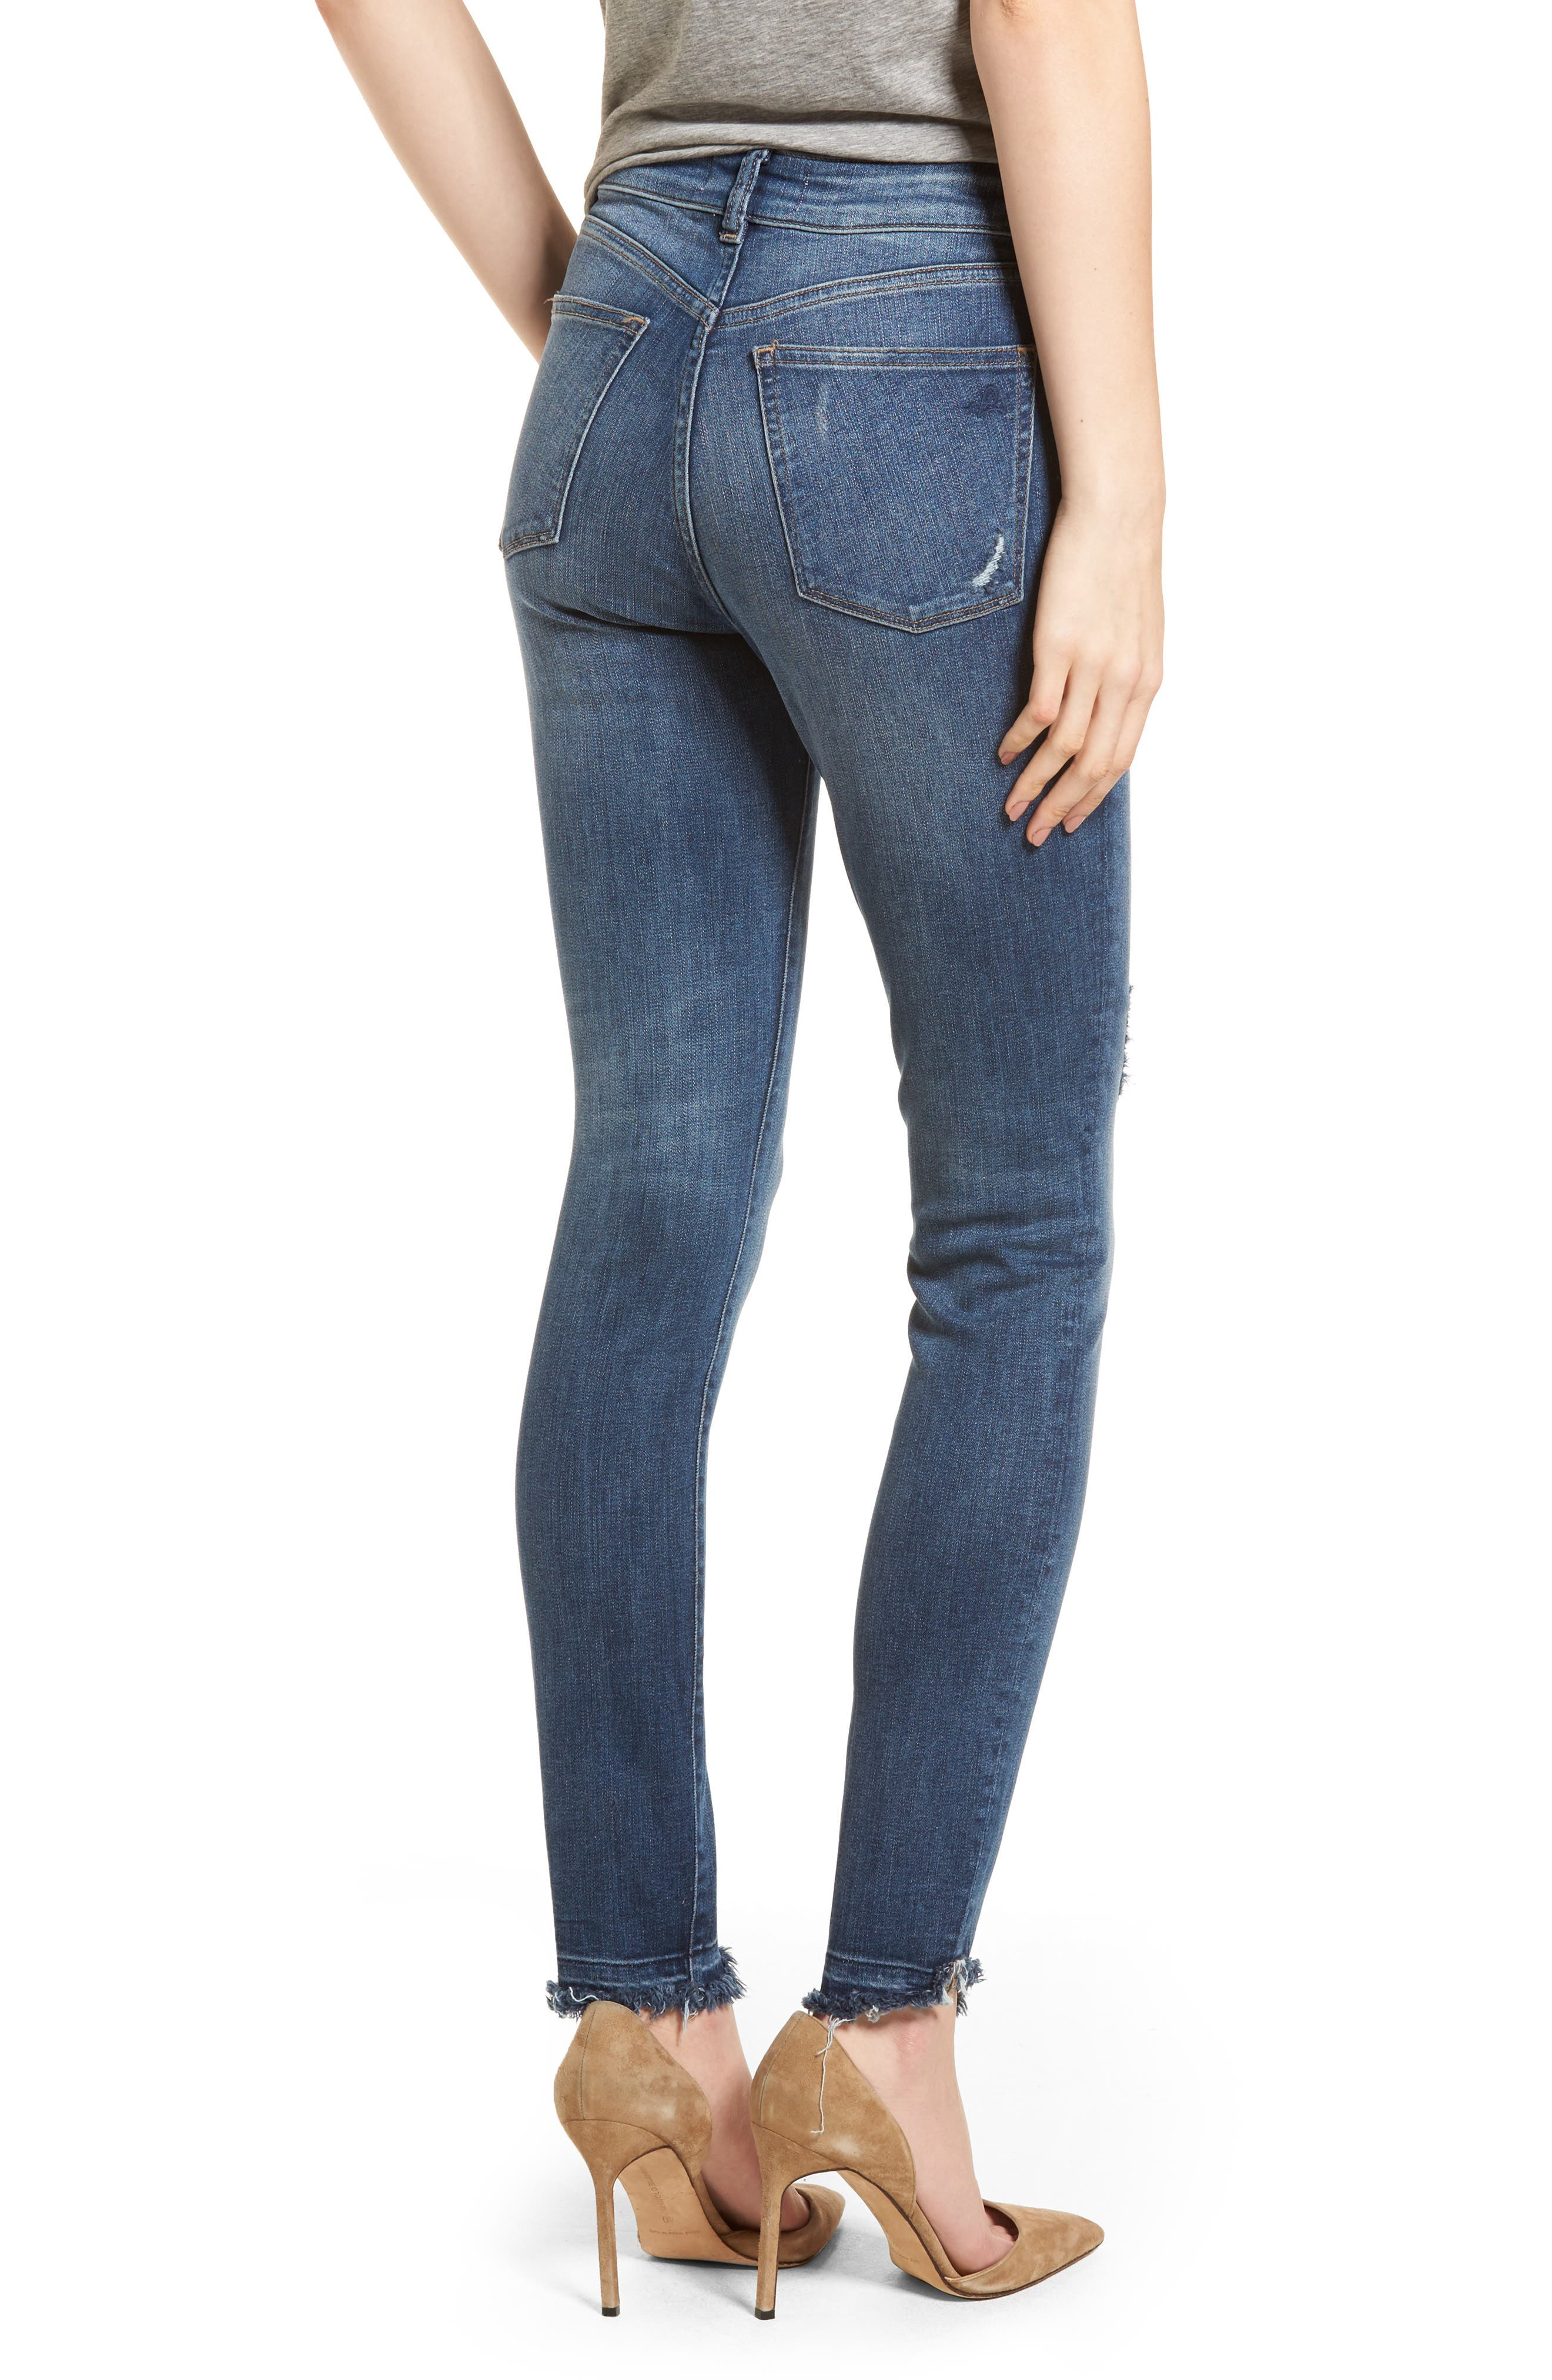 Farrow Instaslim High Waist Skinny Jeans,                             Alternate thumbnail 2, color,                             Crater Lake